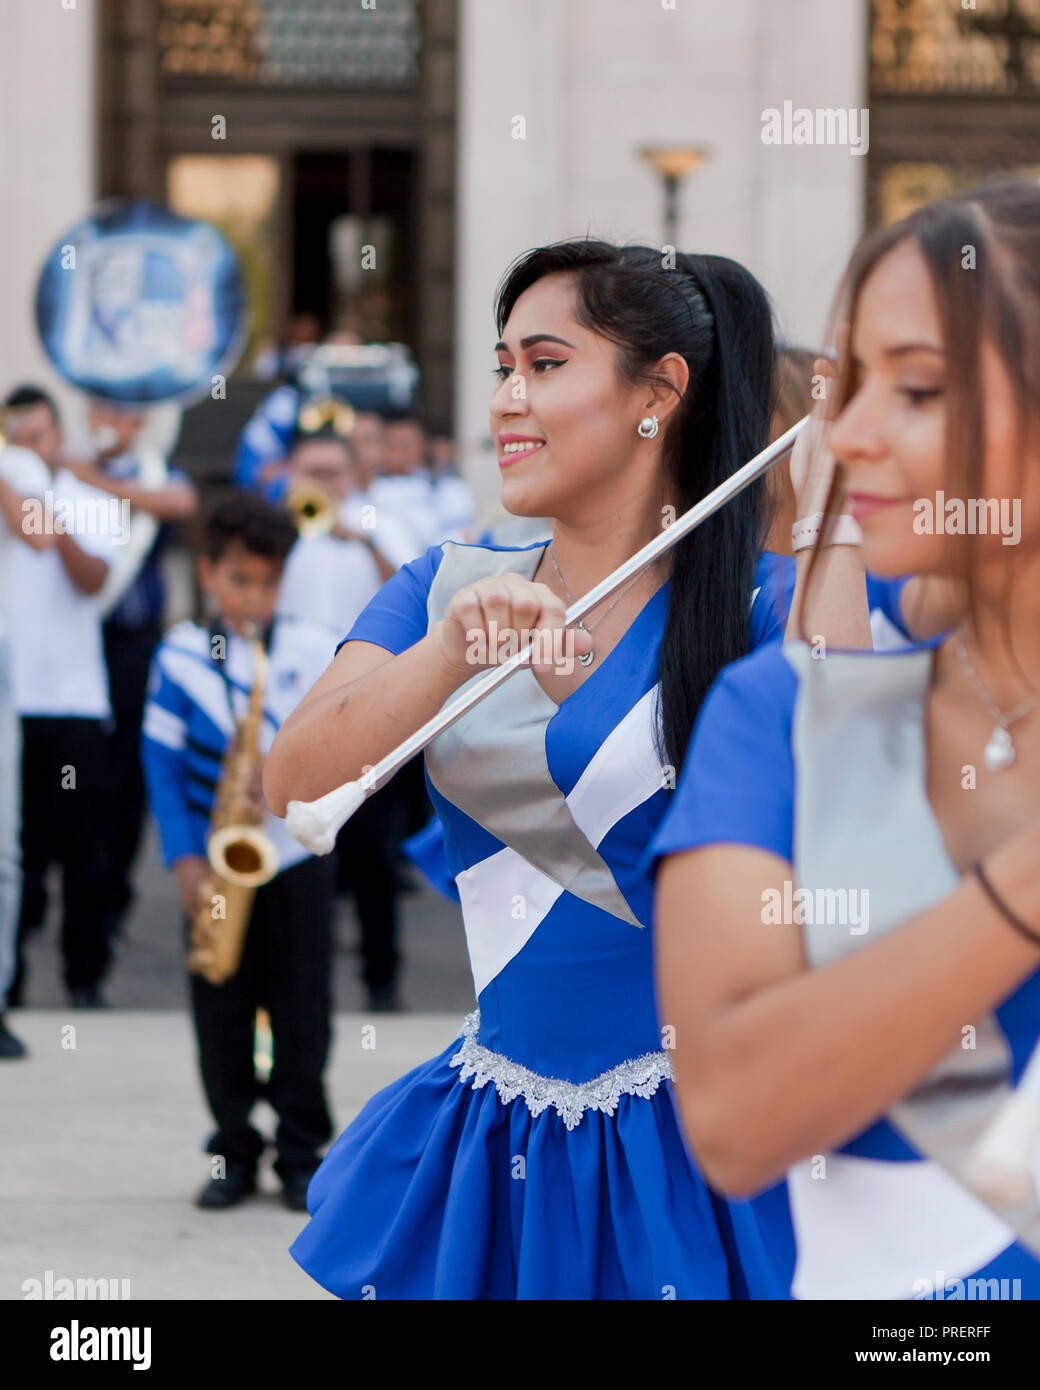 Salvadoran cheerleaders dancing with batons - USA - Stock Image